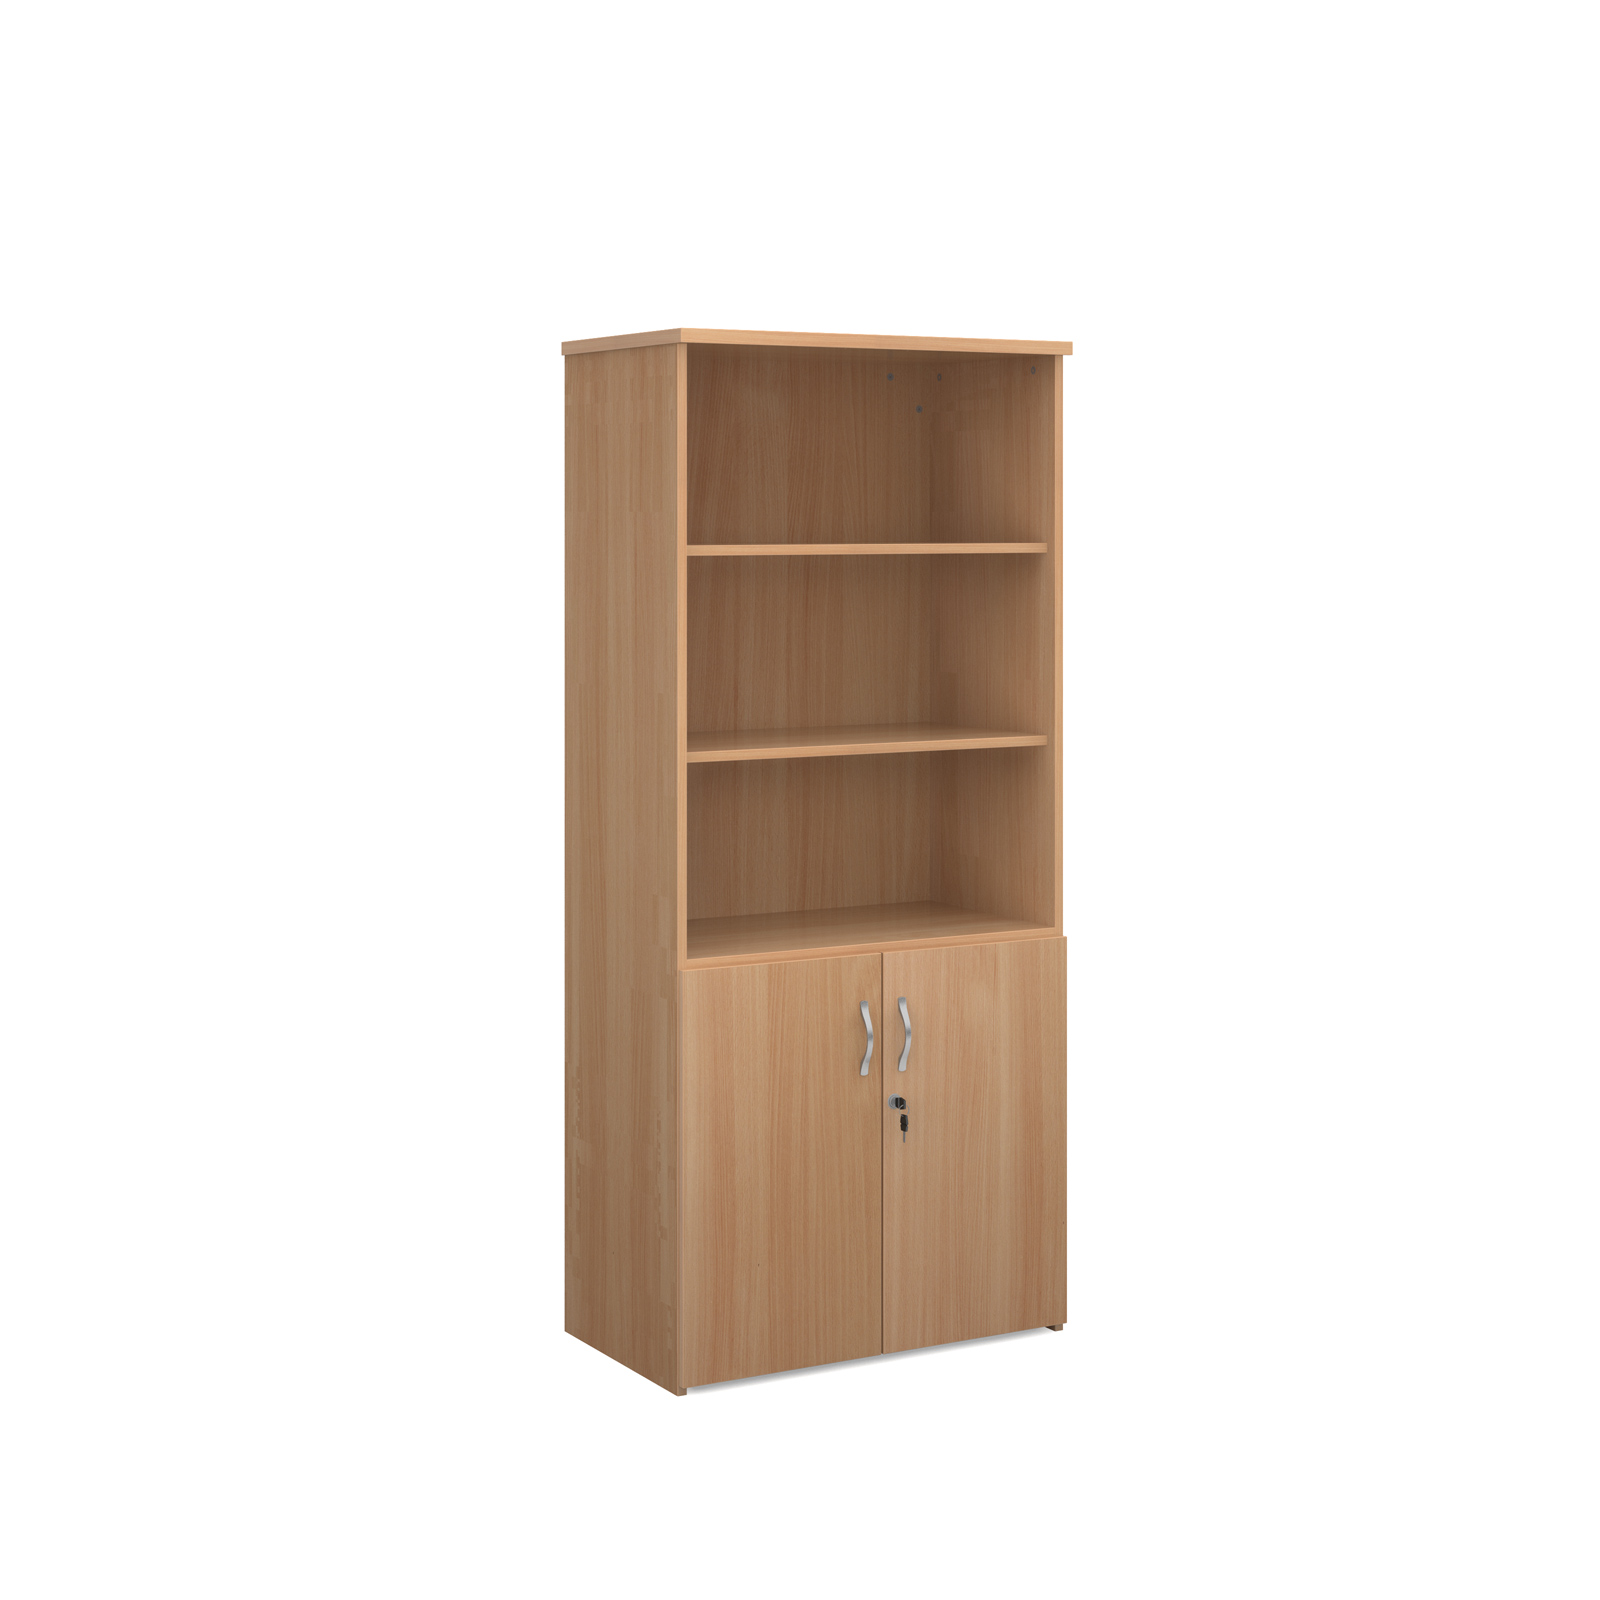 1790mm high combination unit with open top and wood doors in beech